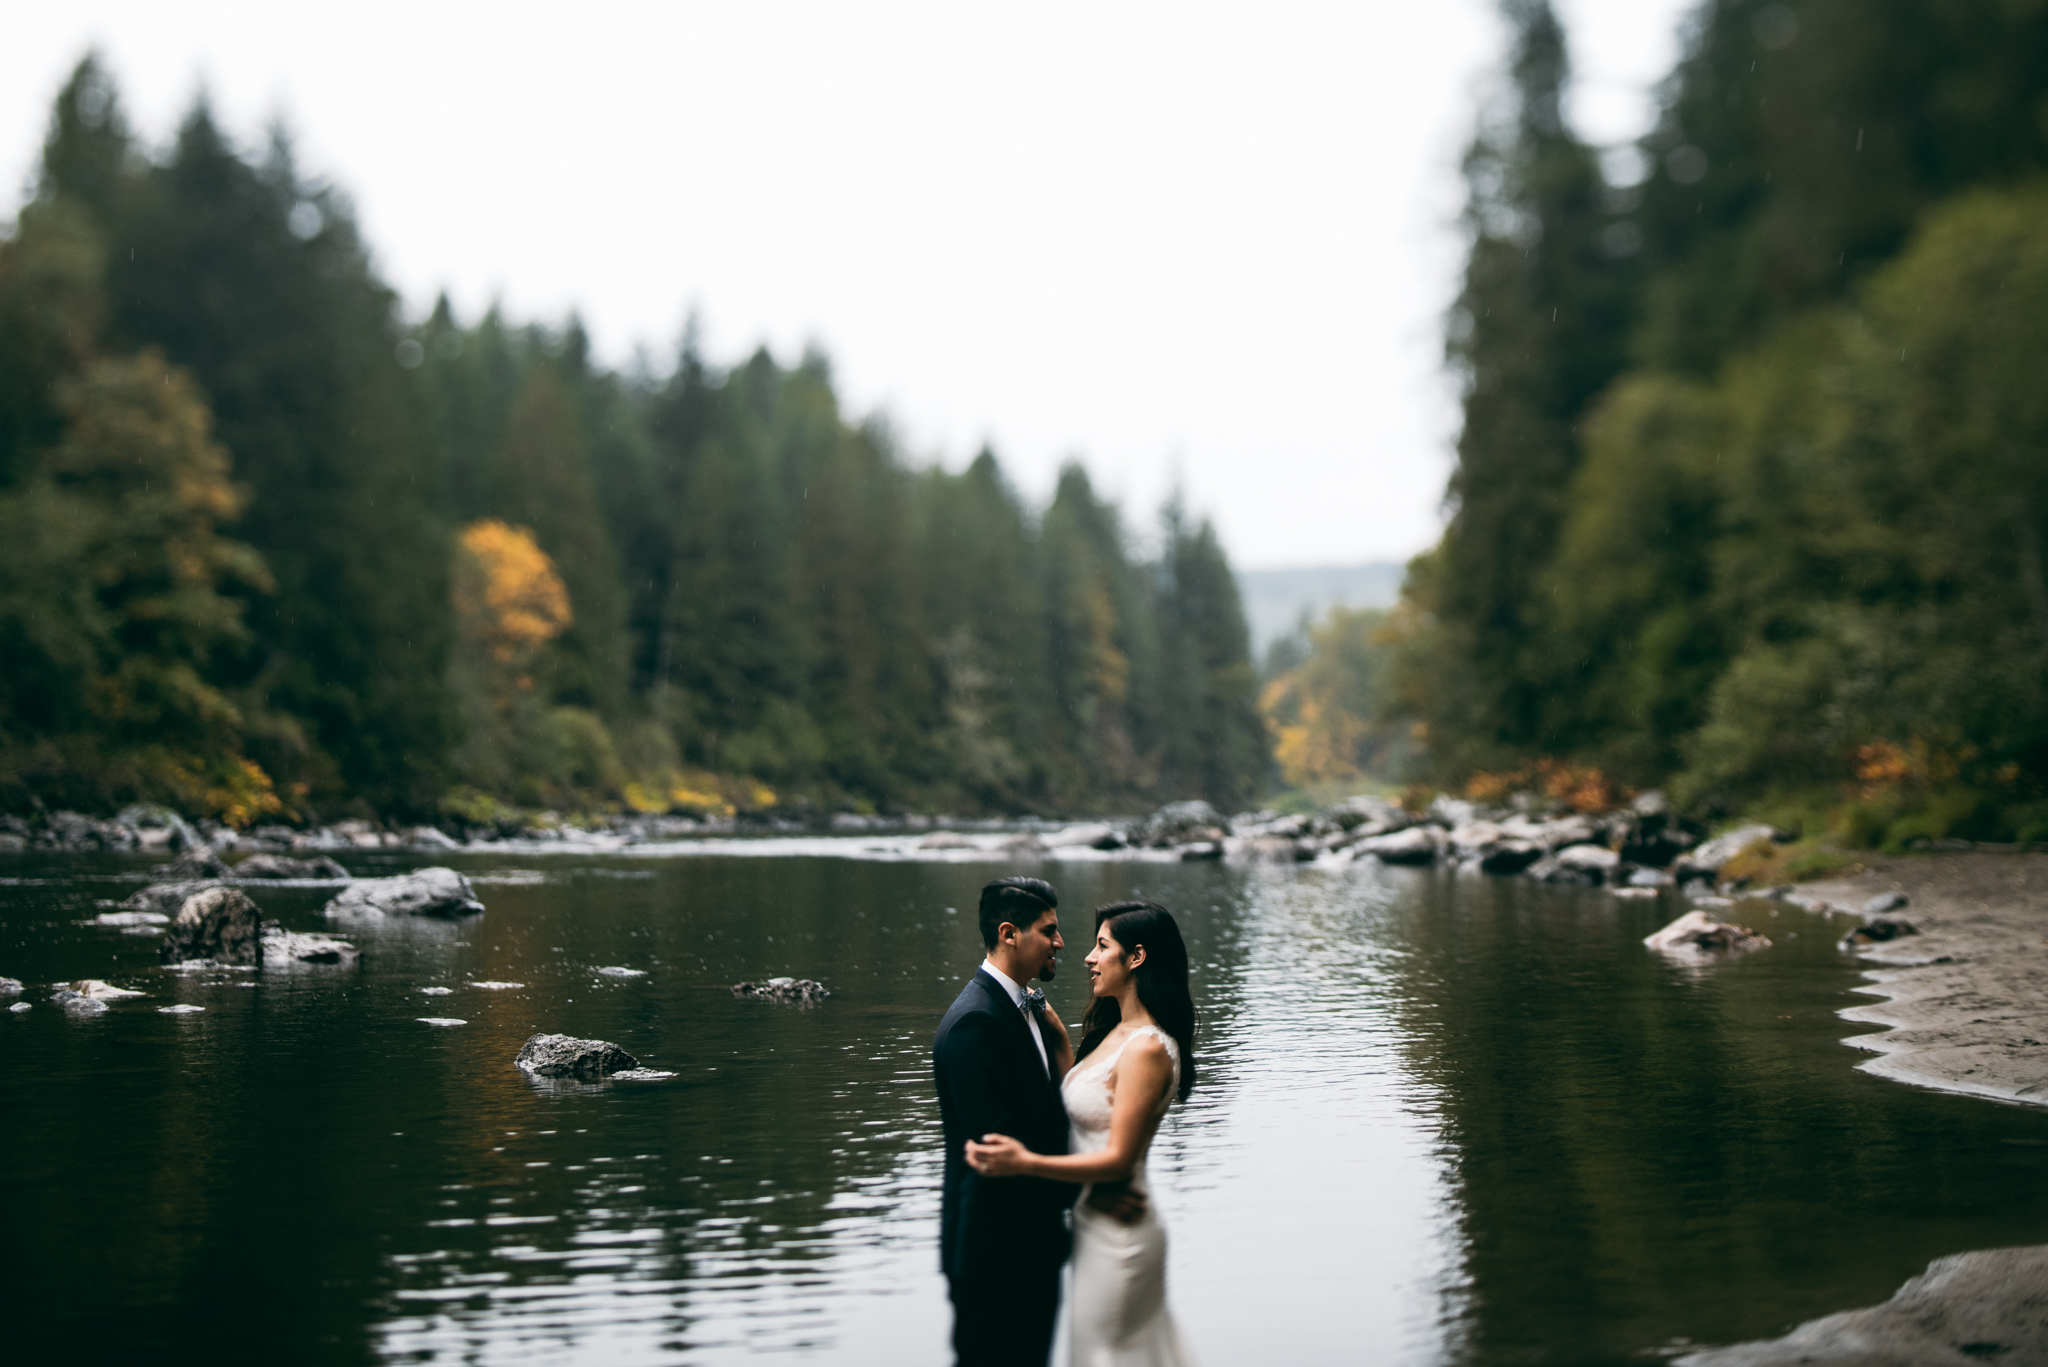 ©Isaiah & Taylor Photography - Los Angeles Wedding - Snoqualmie, Washington Honeymoon-026.jpg